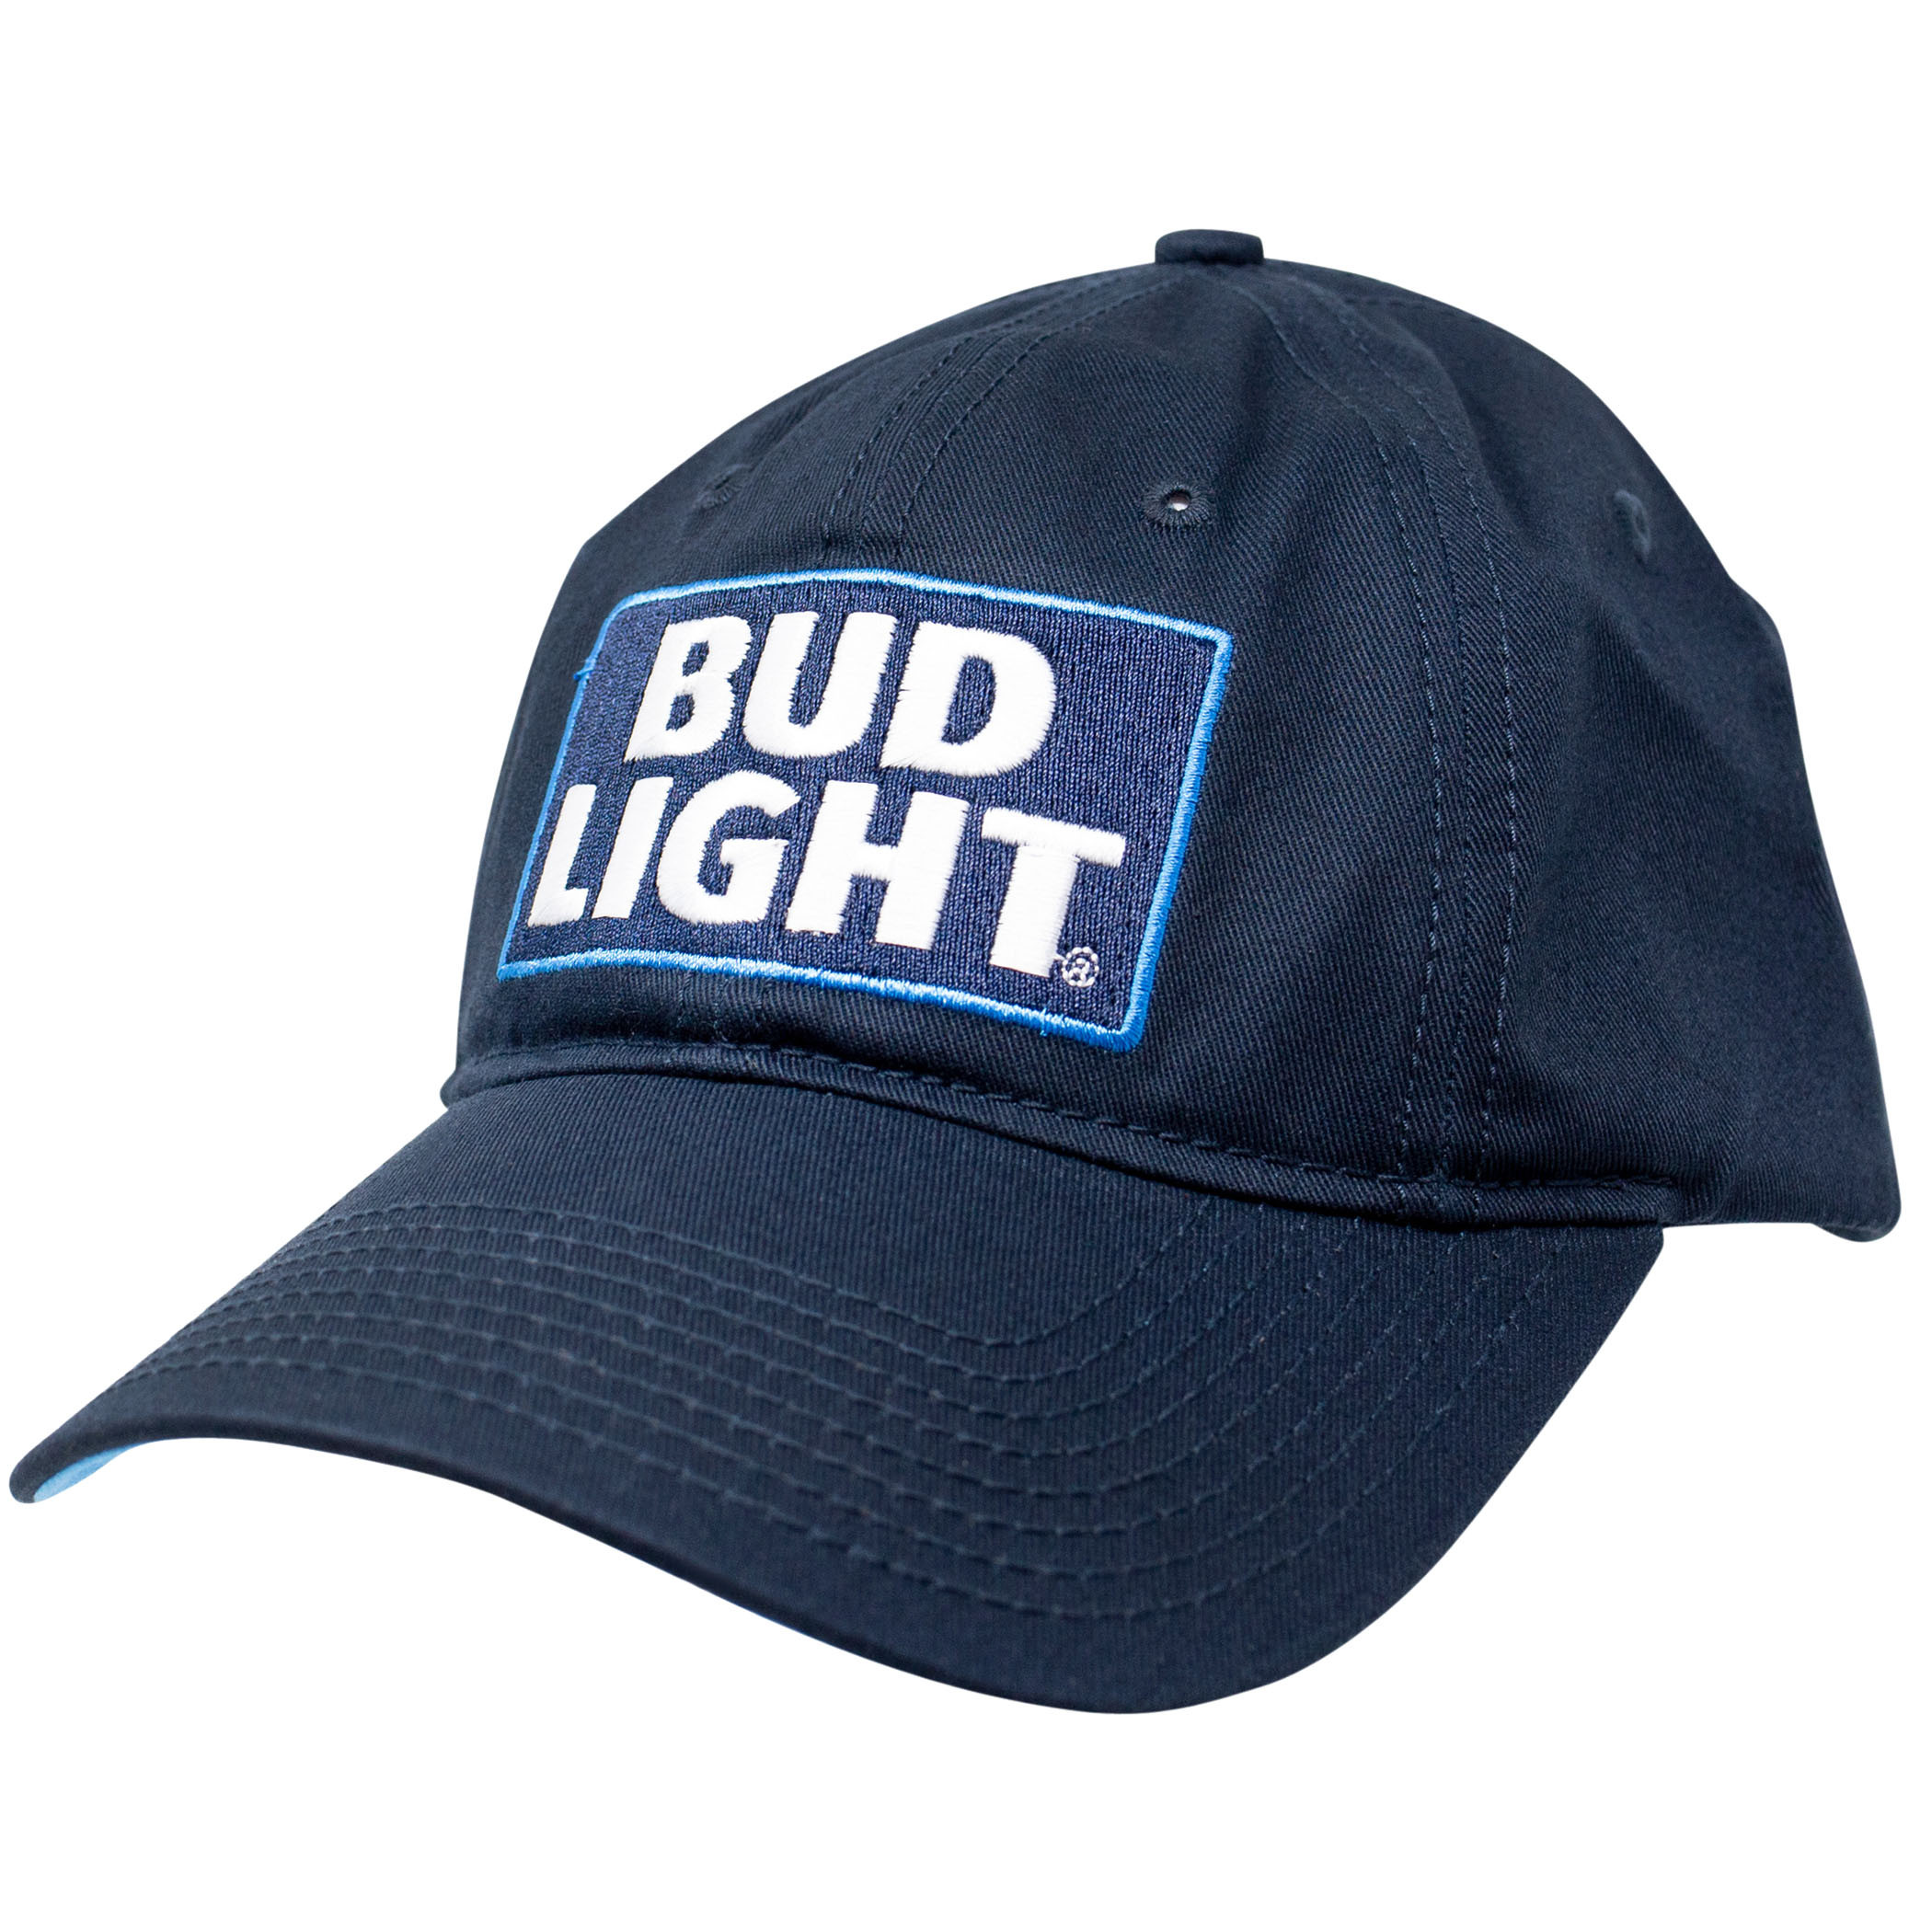 Bud Light Beer Logo Blue Adjustable Hat